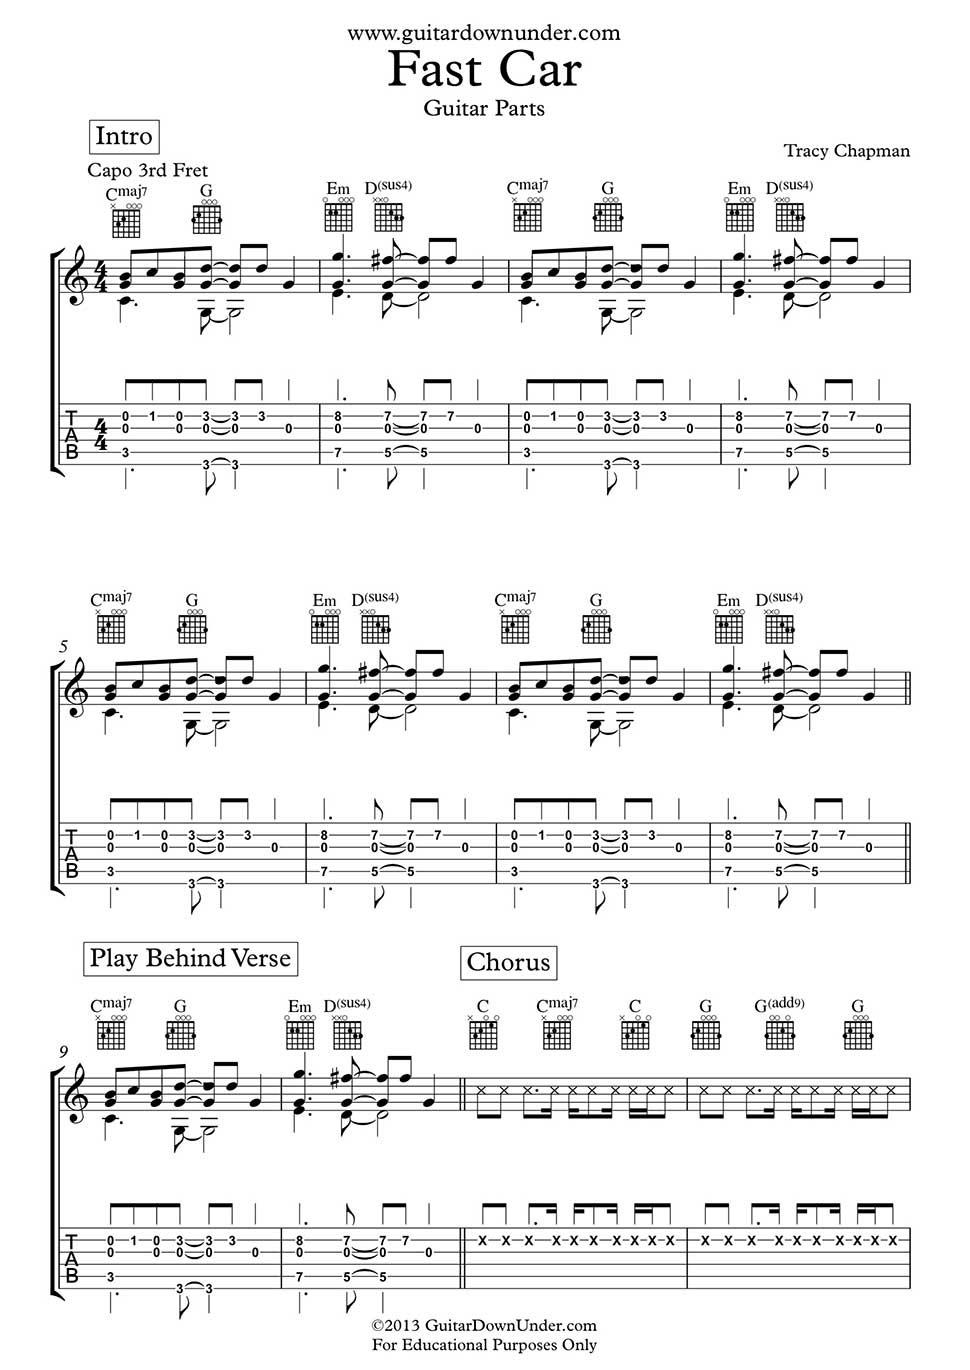 Fast Car Guitar Chords And Tab By Tracy Chapman Arranged For - Tracy chapman fast car guitar